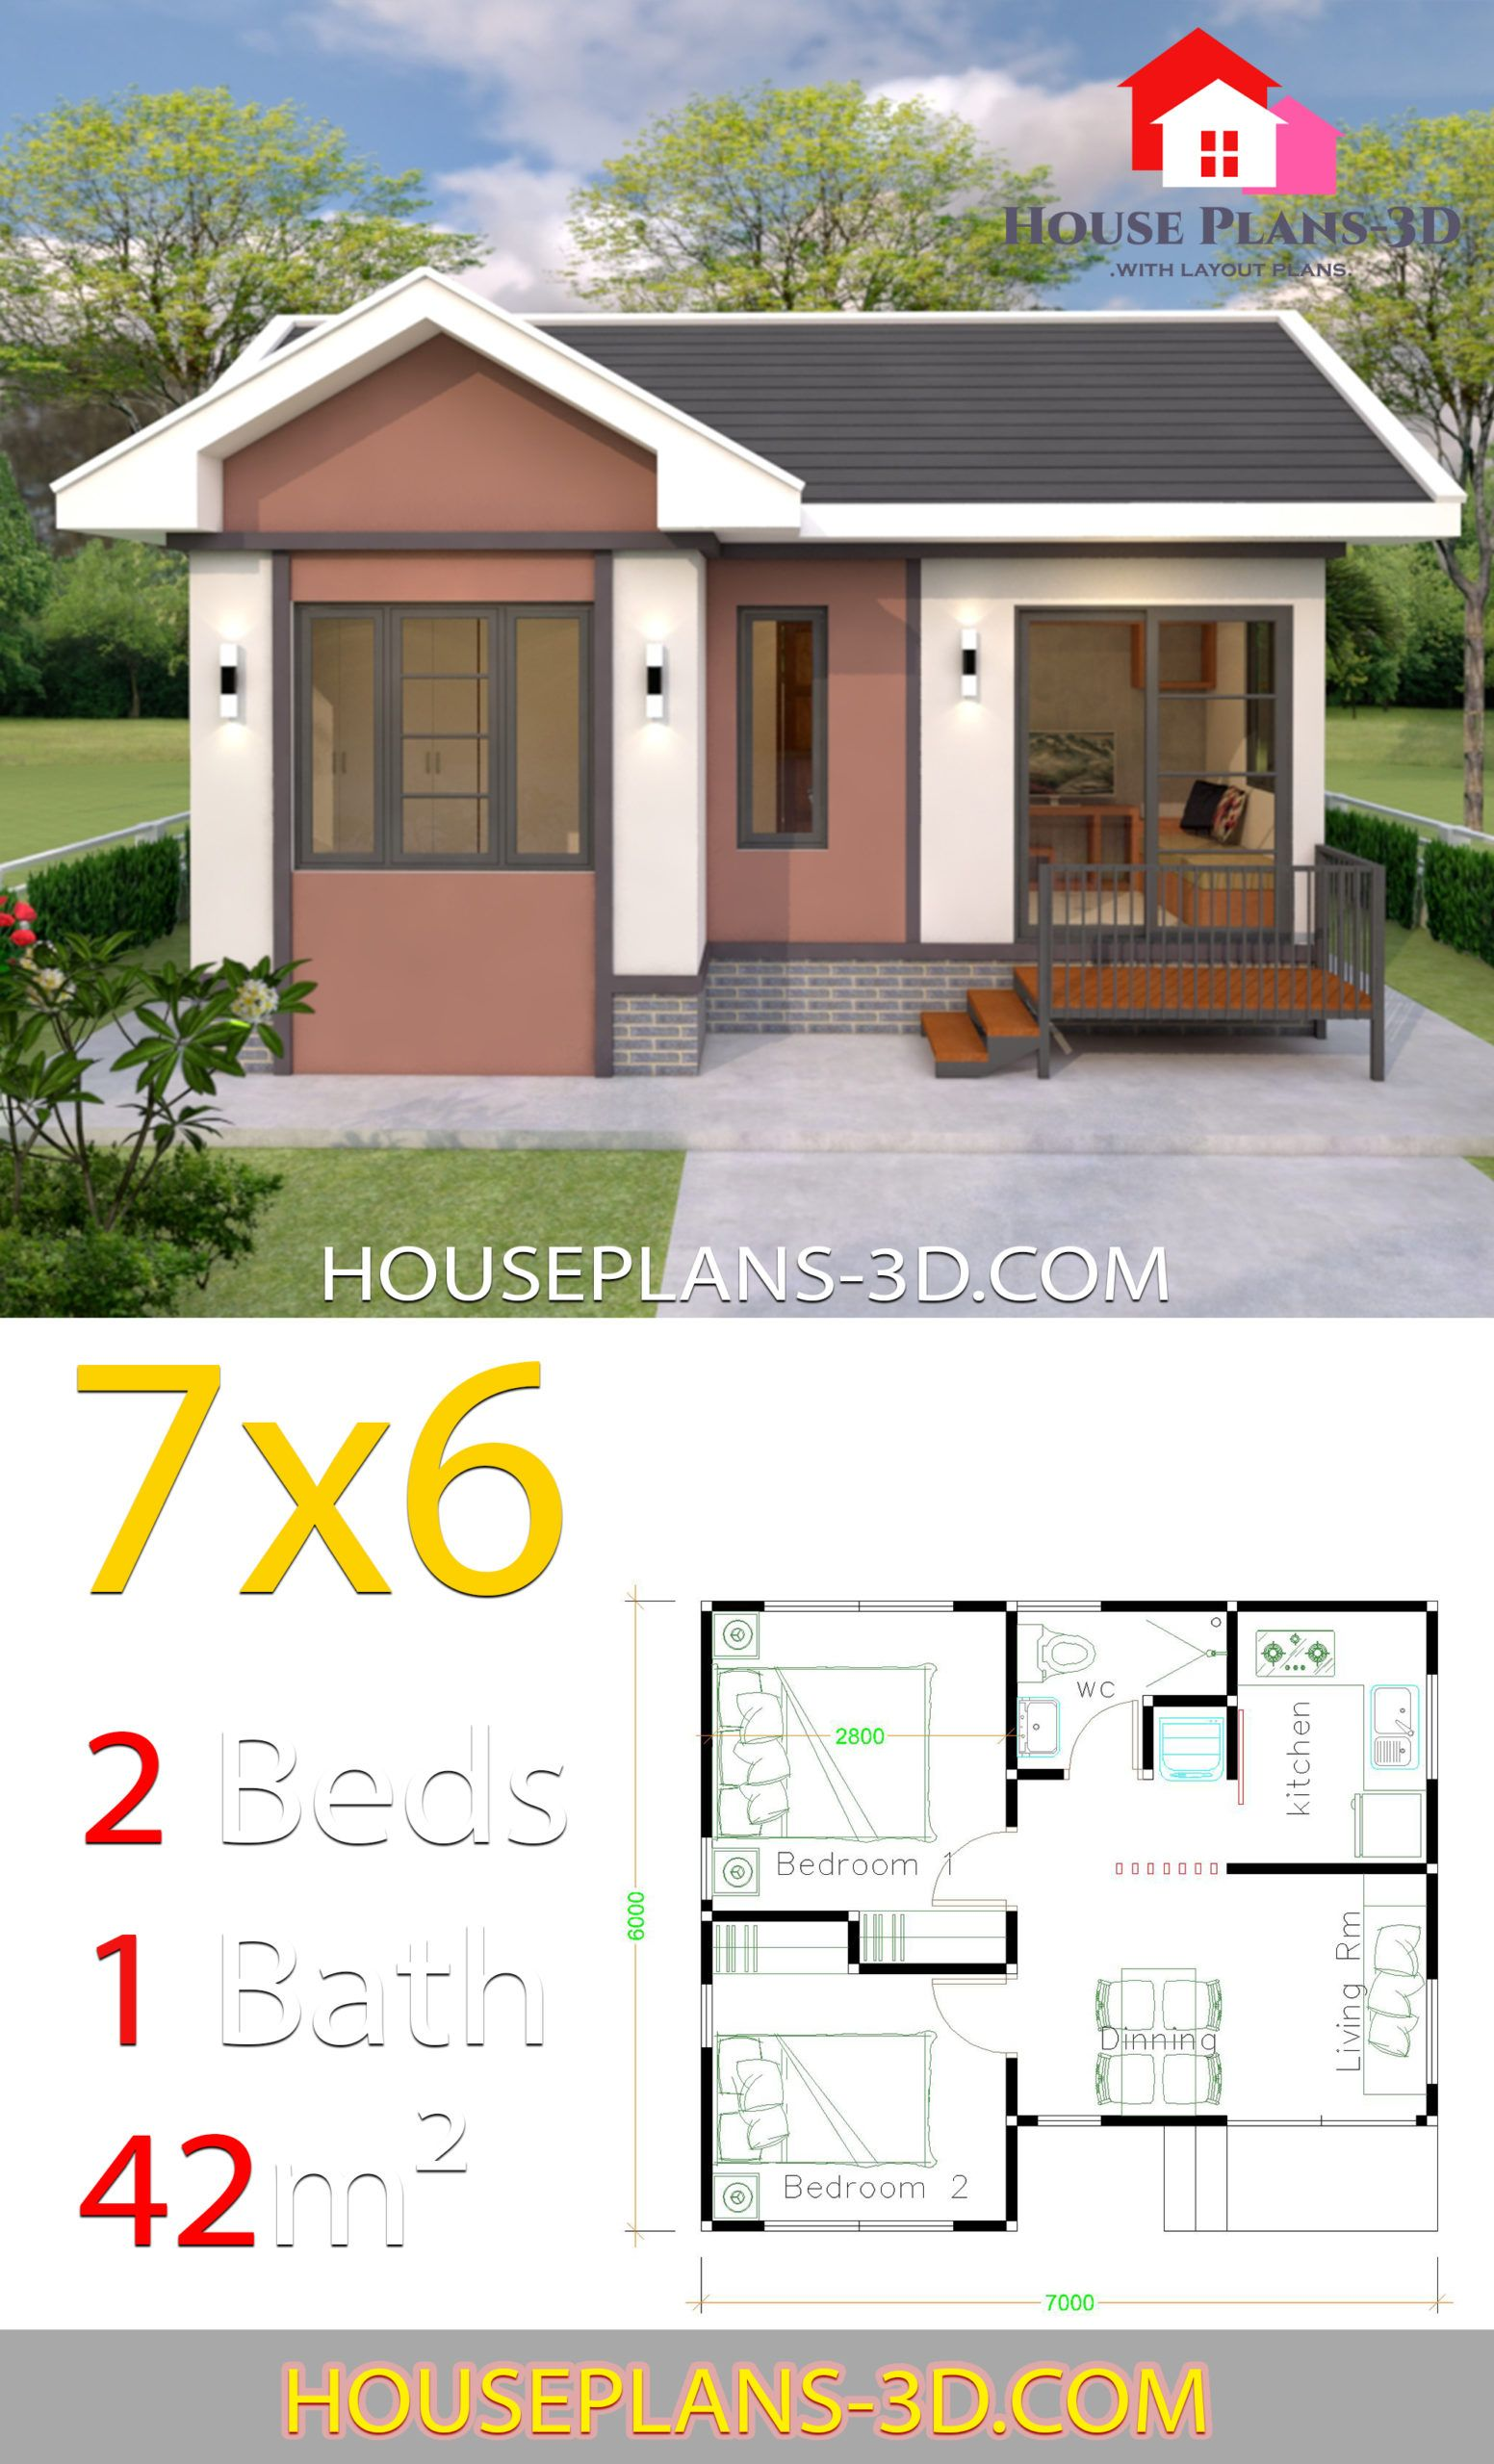 House Plans Design 7x6 With 2 Bedrooms Gable Roof House Plans 3d Flat Roof House House Plans Simple House Plans